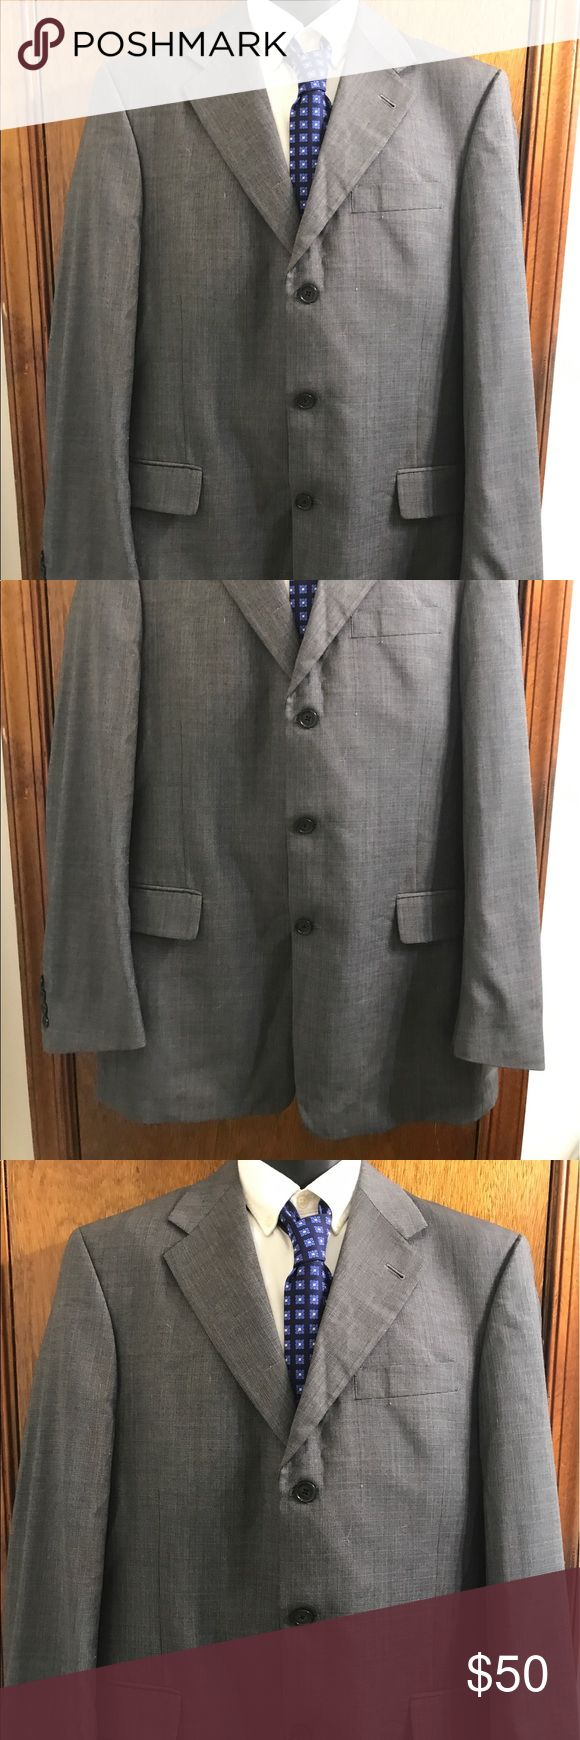 "Hart Schaffner Marx Blue Grey Blazer Size 40L Hart Schaffner Marx Men's Blue Grey 3 Button Blazer Size 40L 3 Button front 4 Button sleeves Chest 22"" across Waist 20"" across Sleeves 25.5"" Shoulders 18"" Length 33"" Vent 11"" Hart Schaffner Marx Suits & Blazers Sport Coats & Blazers"